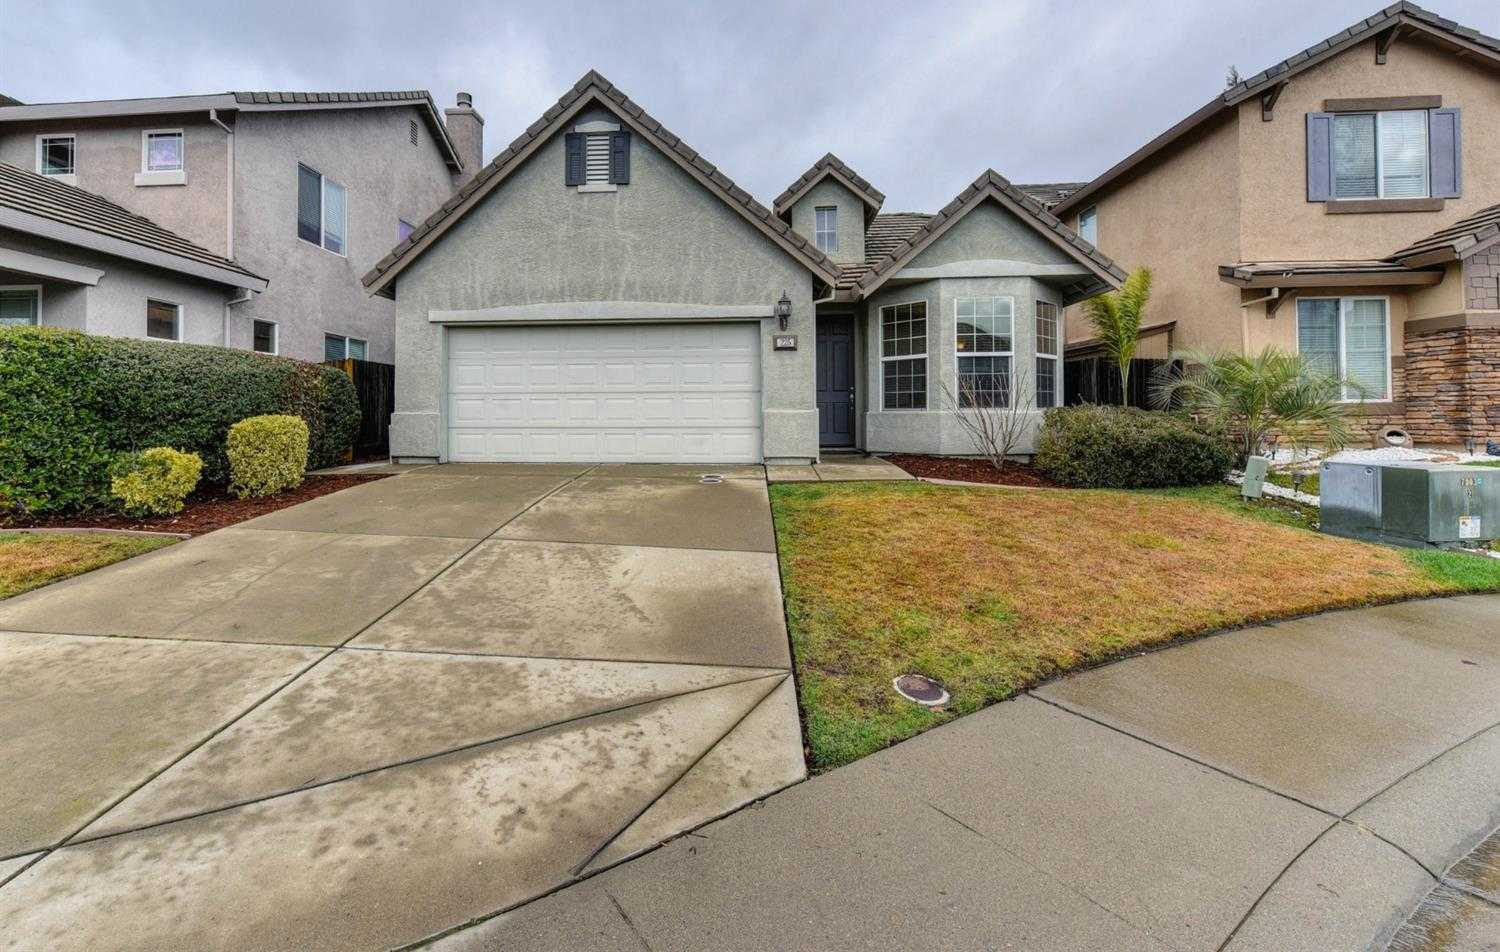 225 Needle Ct Roseville, CA 95678